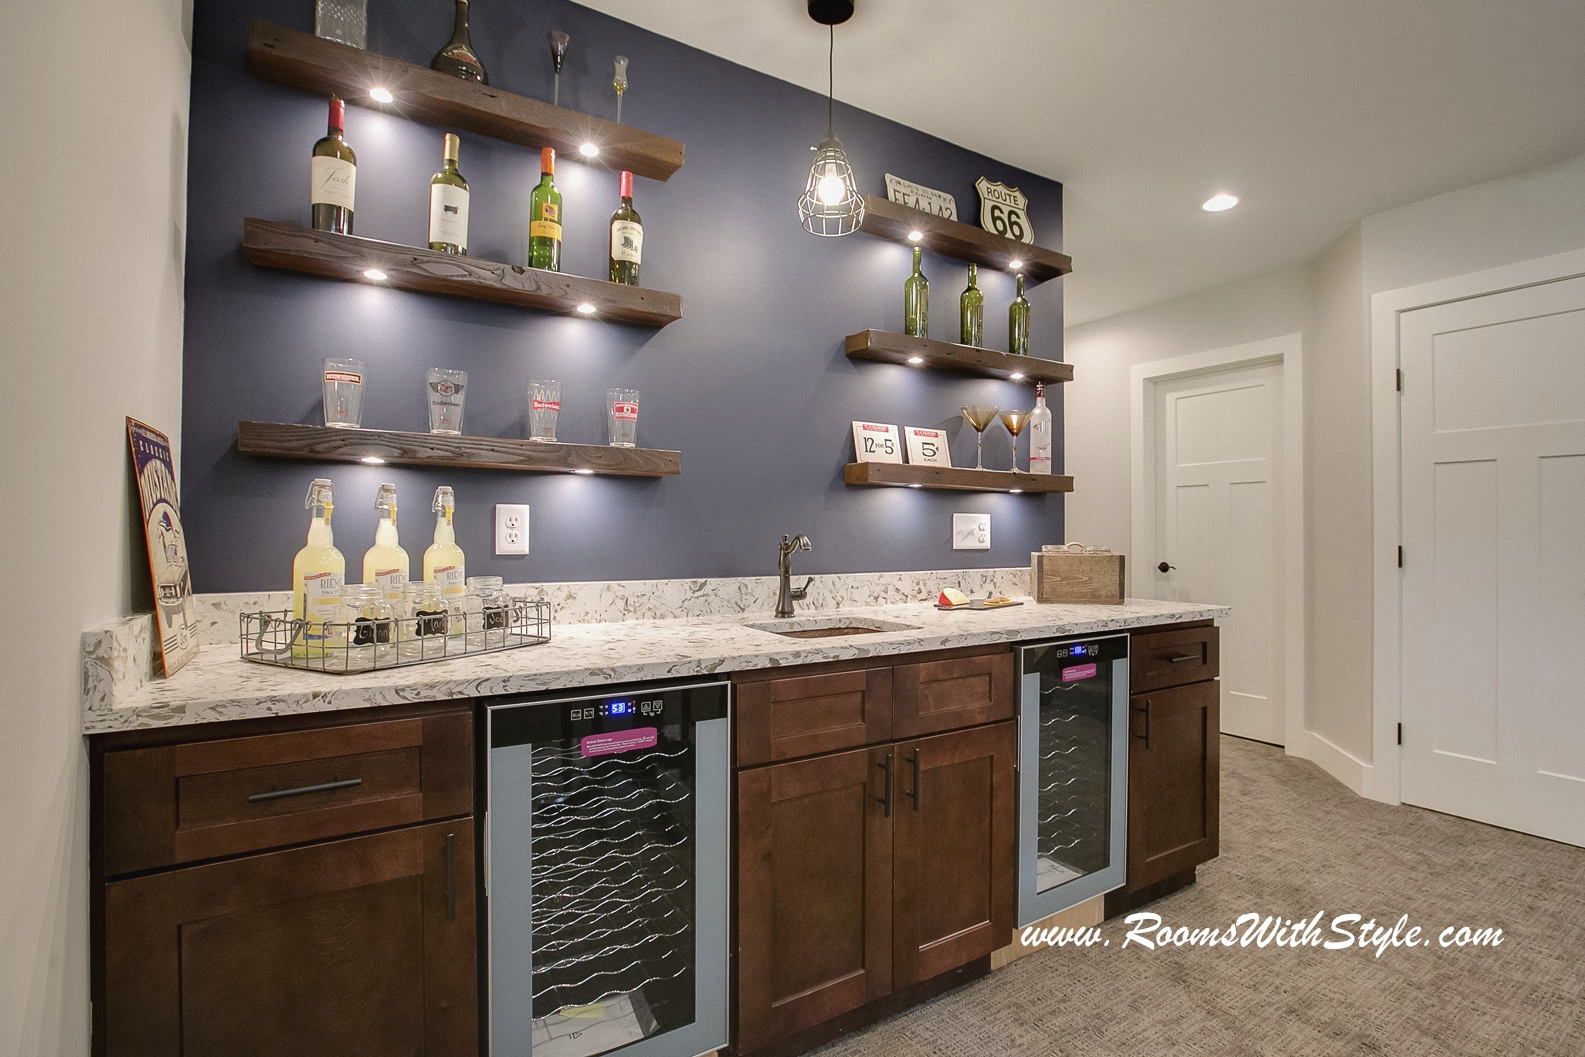 Shelves Above Kitchen Cabinets What Do You Think Of Floating Shelves Rooms With Style Home